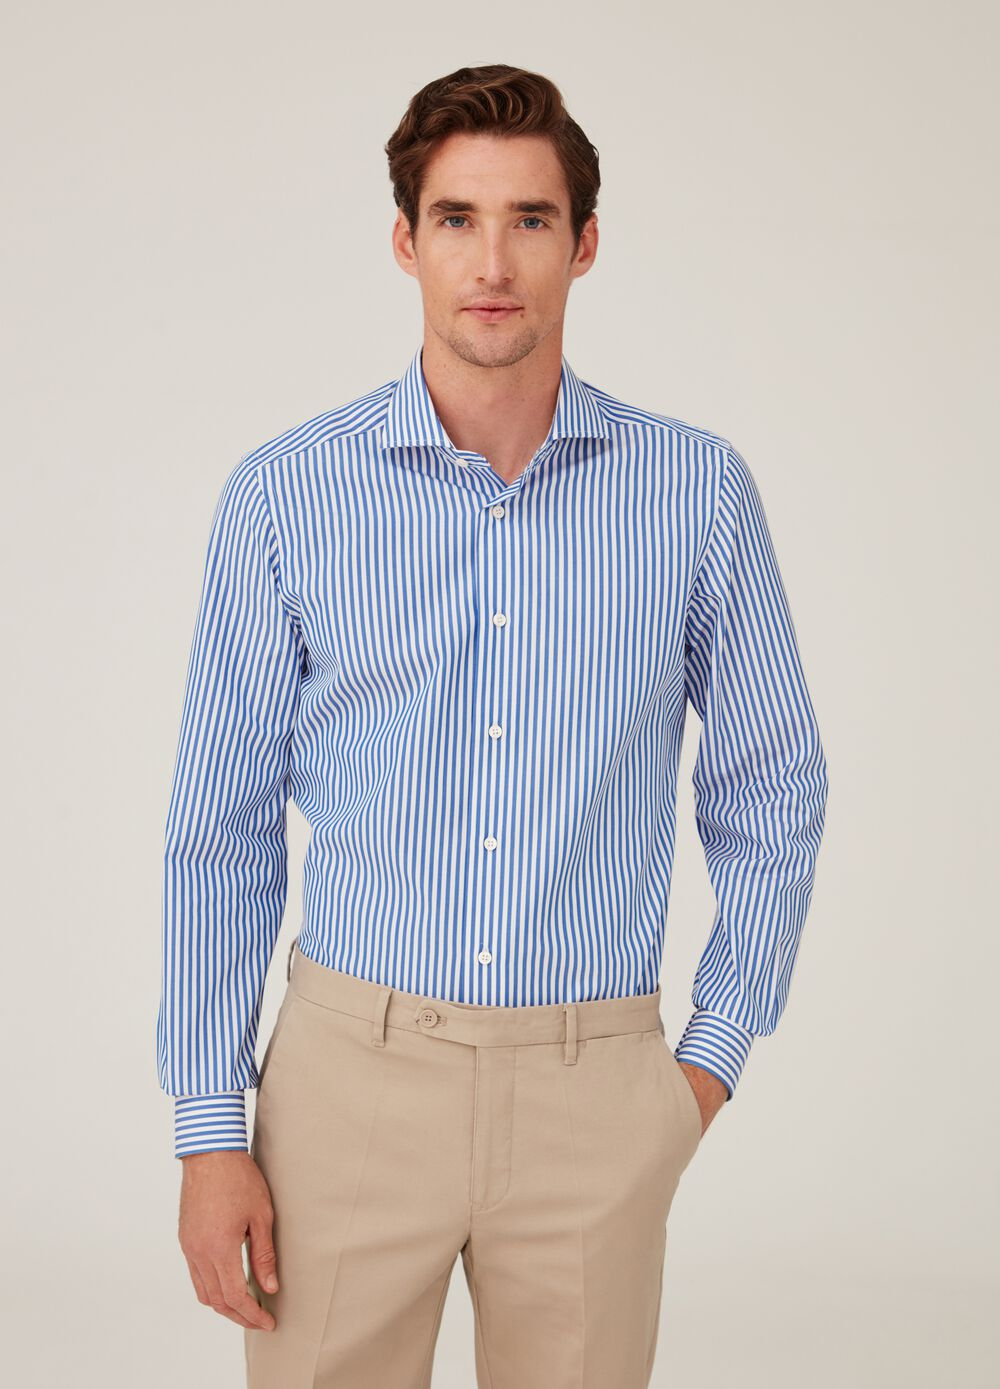 100% cotton slim-fit shirt with striped pattern